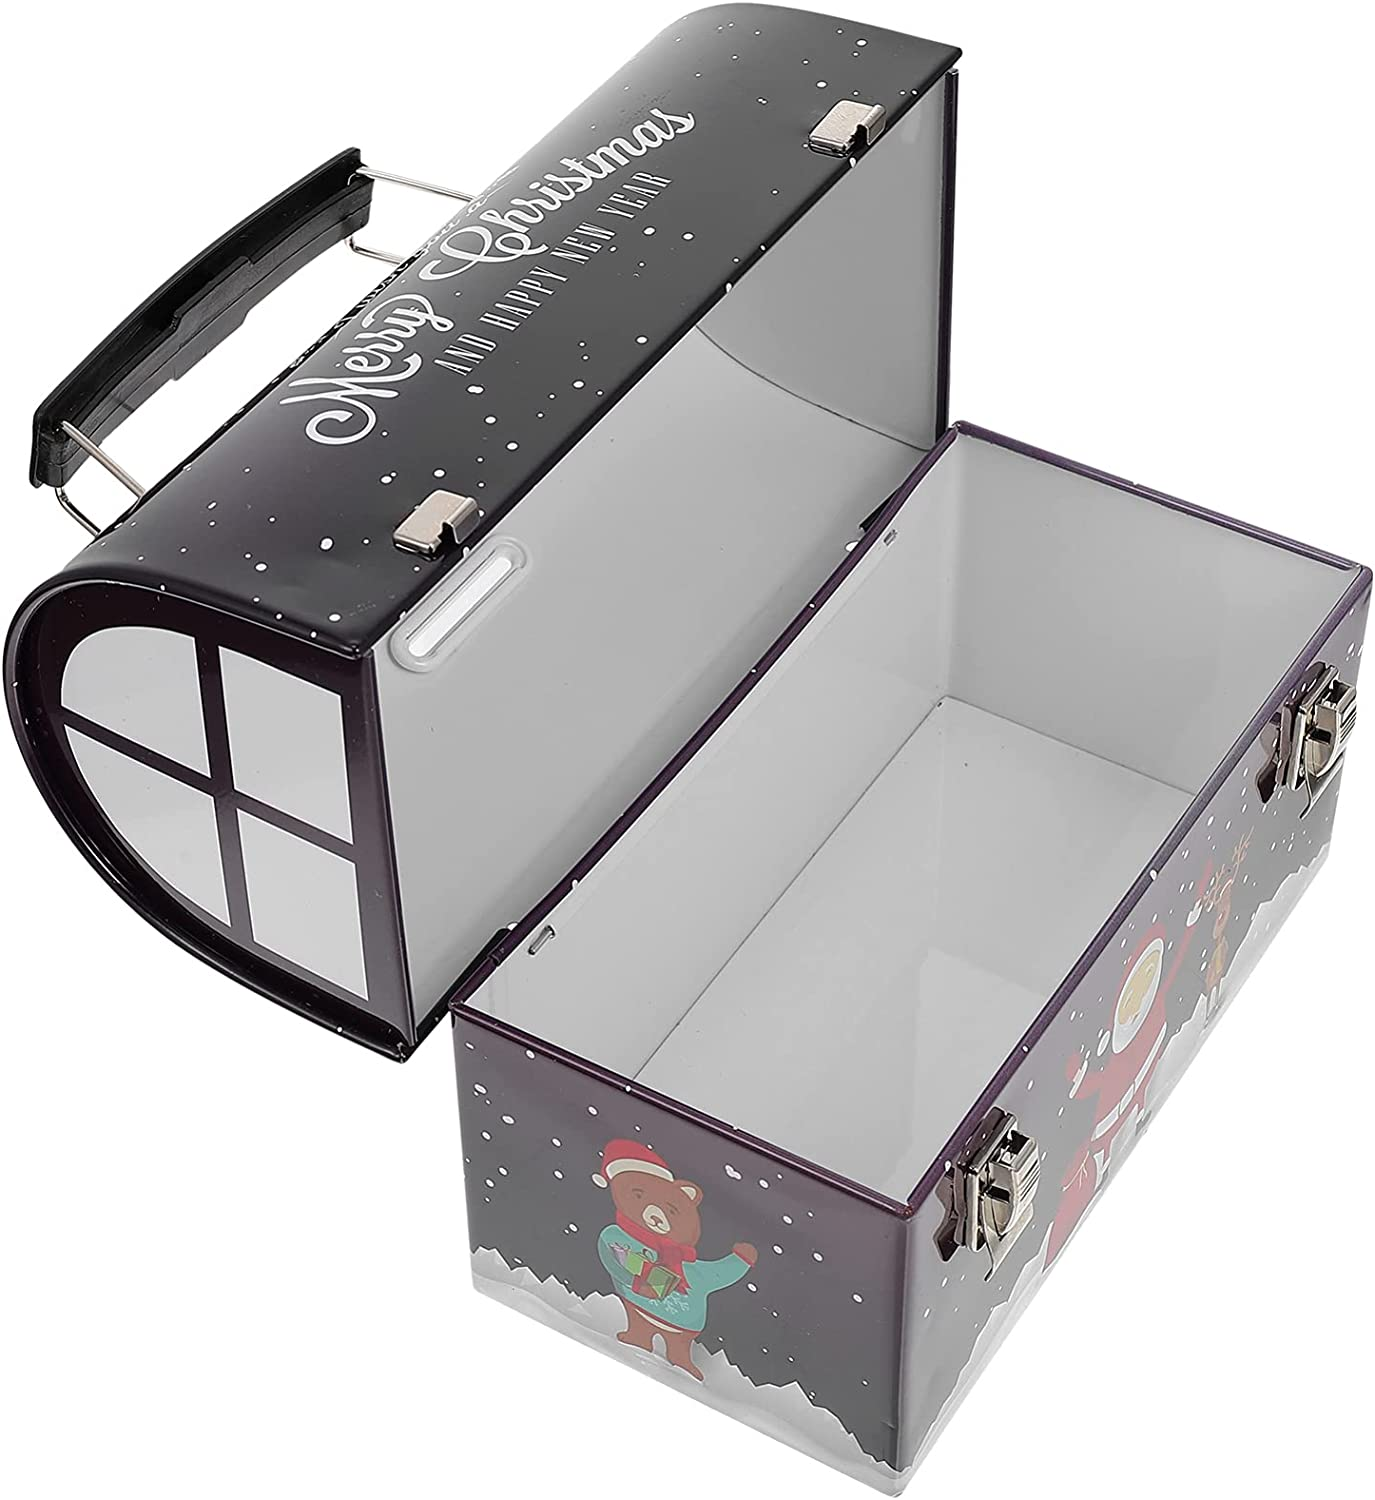 NOLITOY 1PC Multi- Xmas Gift Packing Tinplate Box Storage B Challenge the lowest price of Max 61% OFF Japan